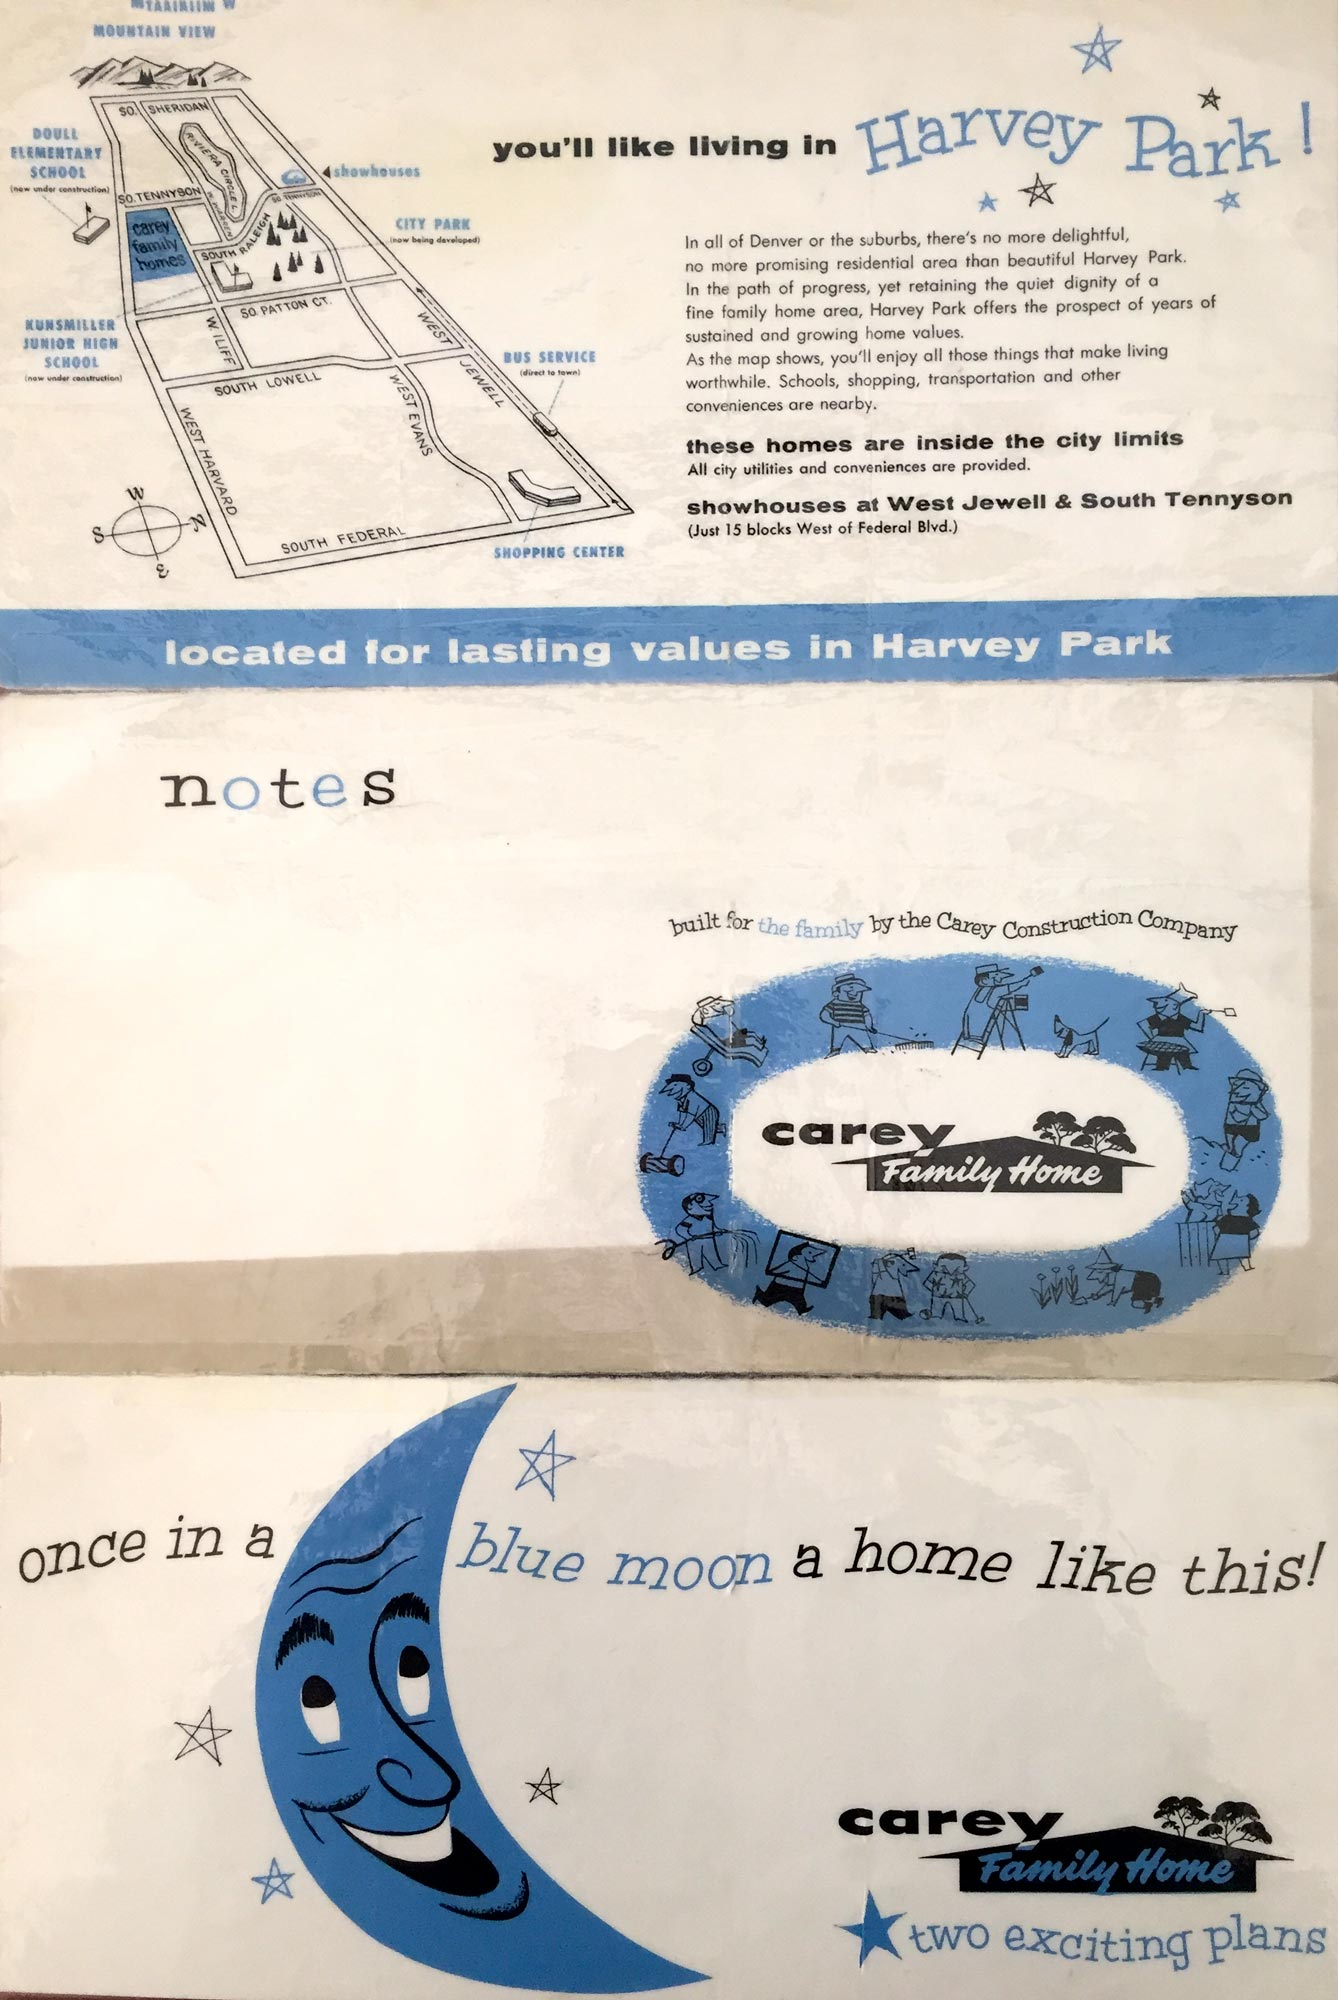 Adrian-Kinney-Carey-Homes-Harvey-Park-Denver-Brochure-back.jpg